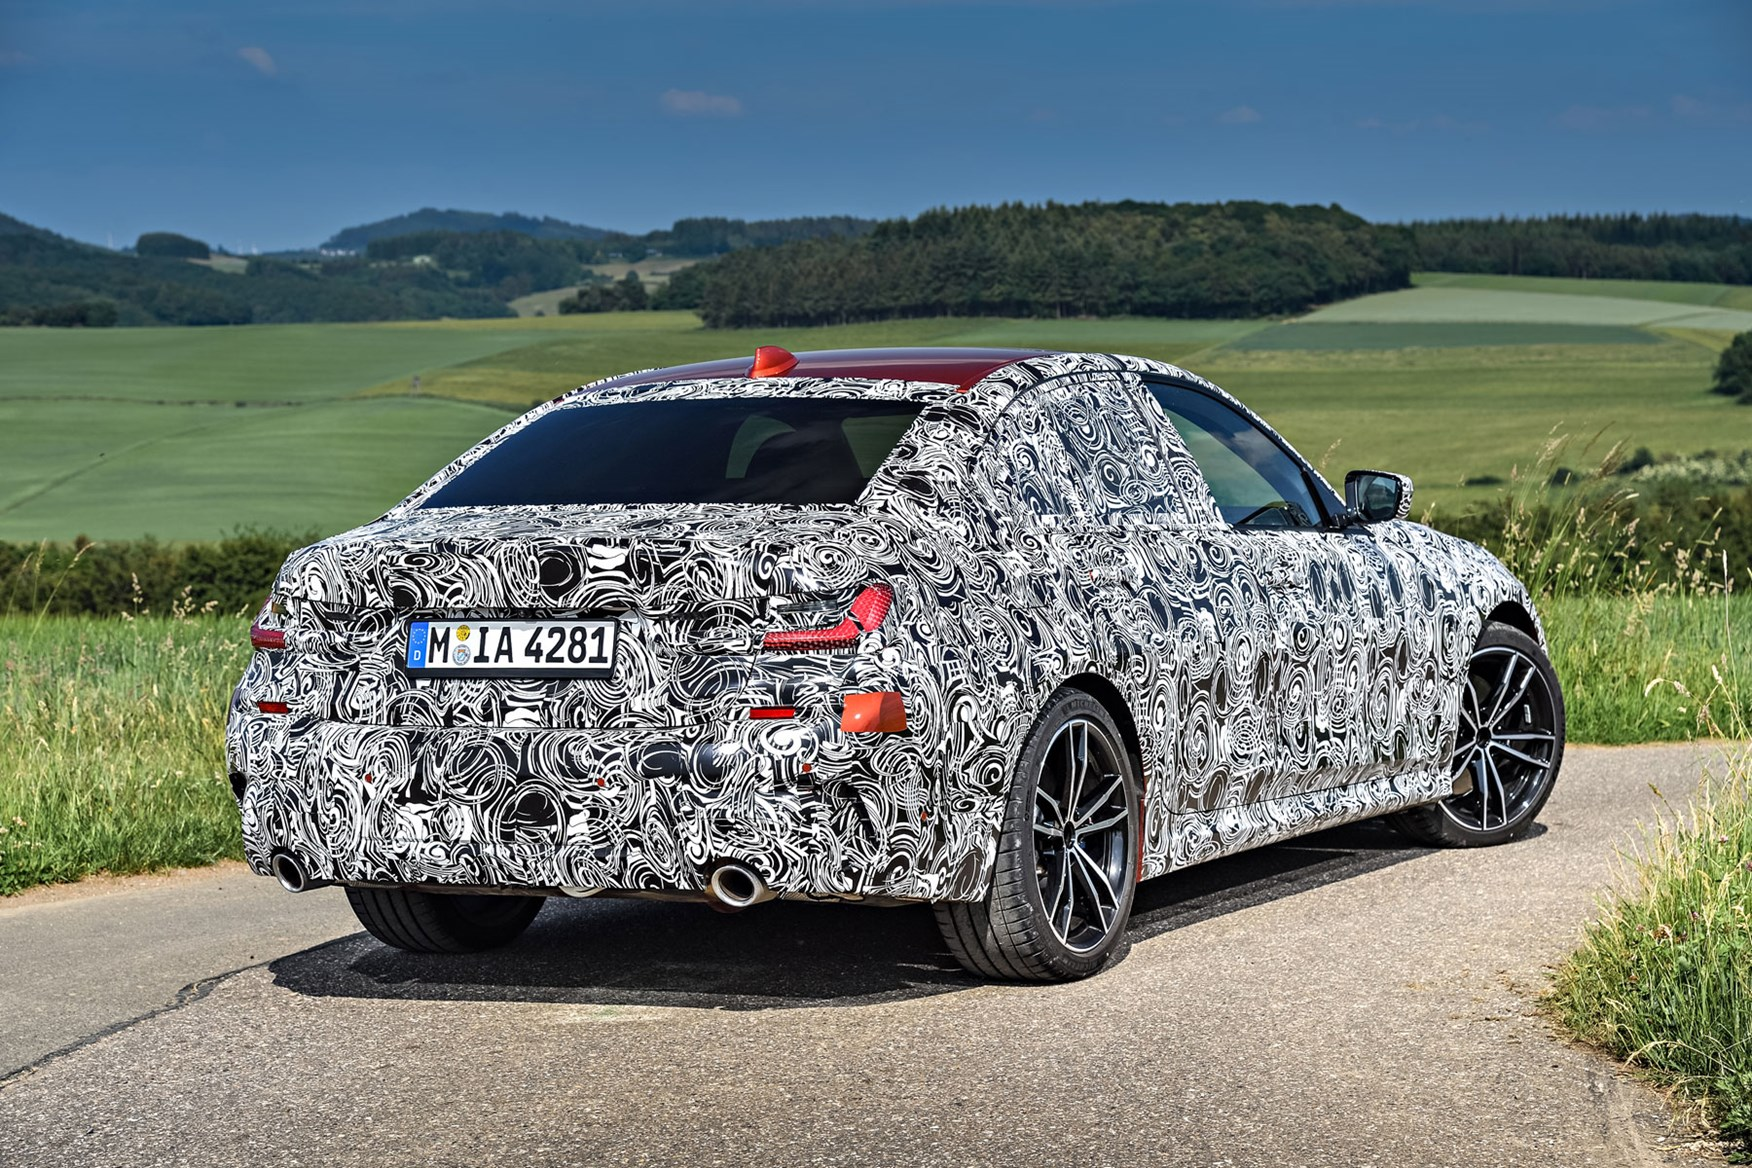 BMW 3 Series rear view disguised